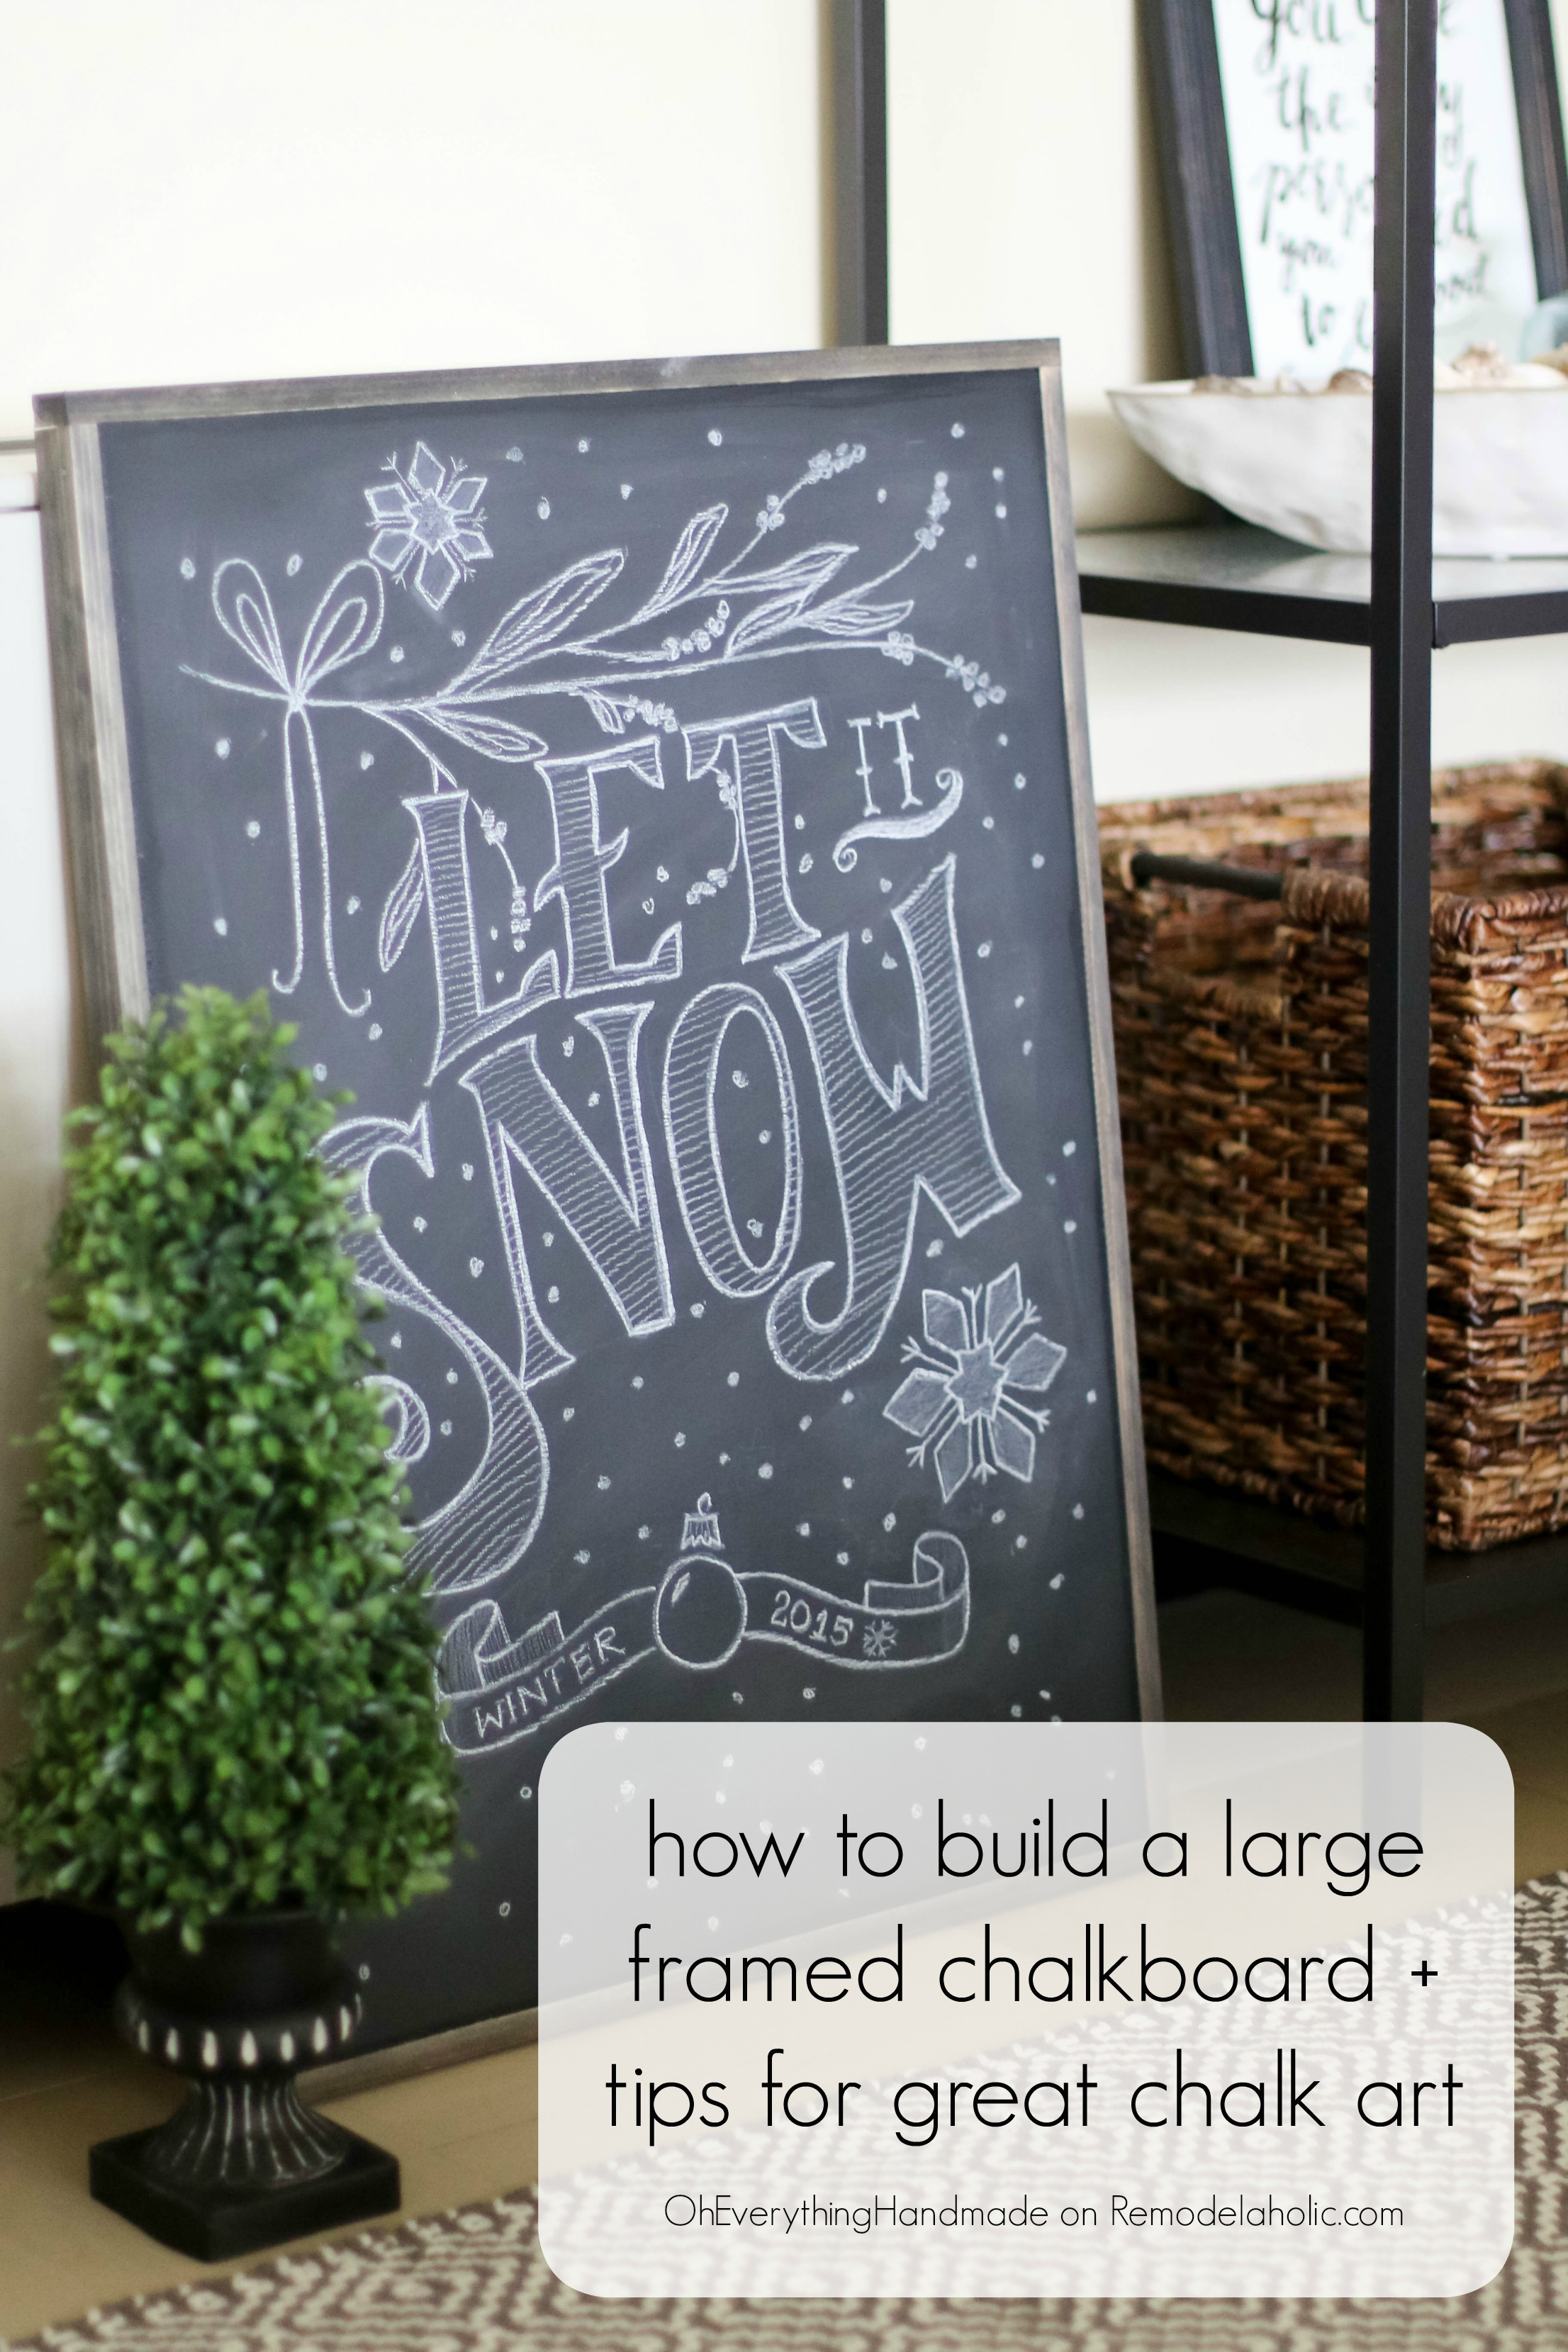 Remodelaholic | How to Make a Framed Chalkboard + Tips for Great ...